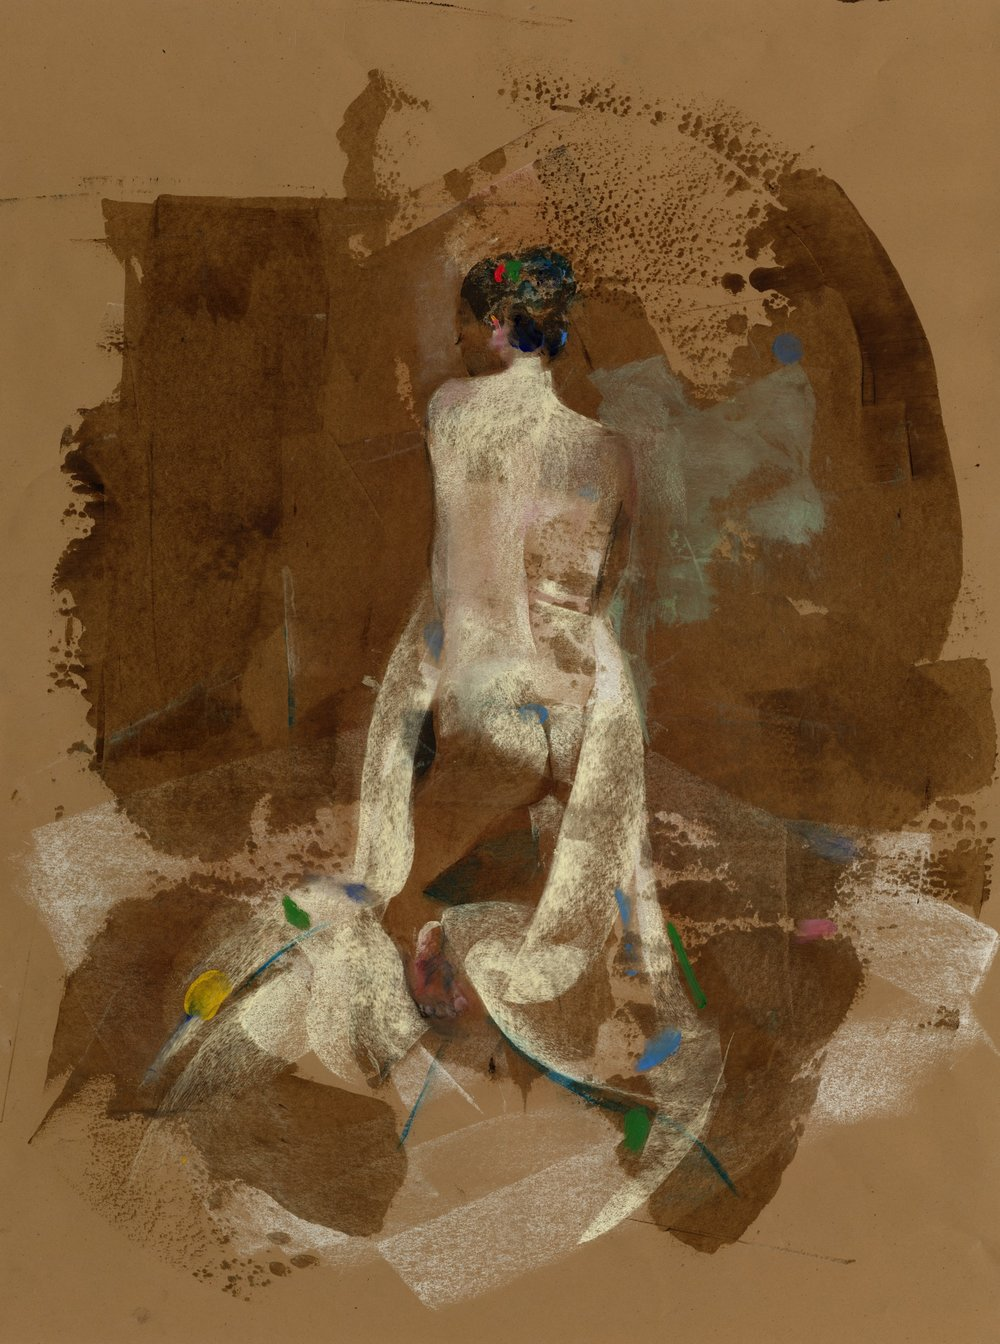 Red and Green Nude - Mixed Media - 18 x 24.jpg